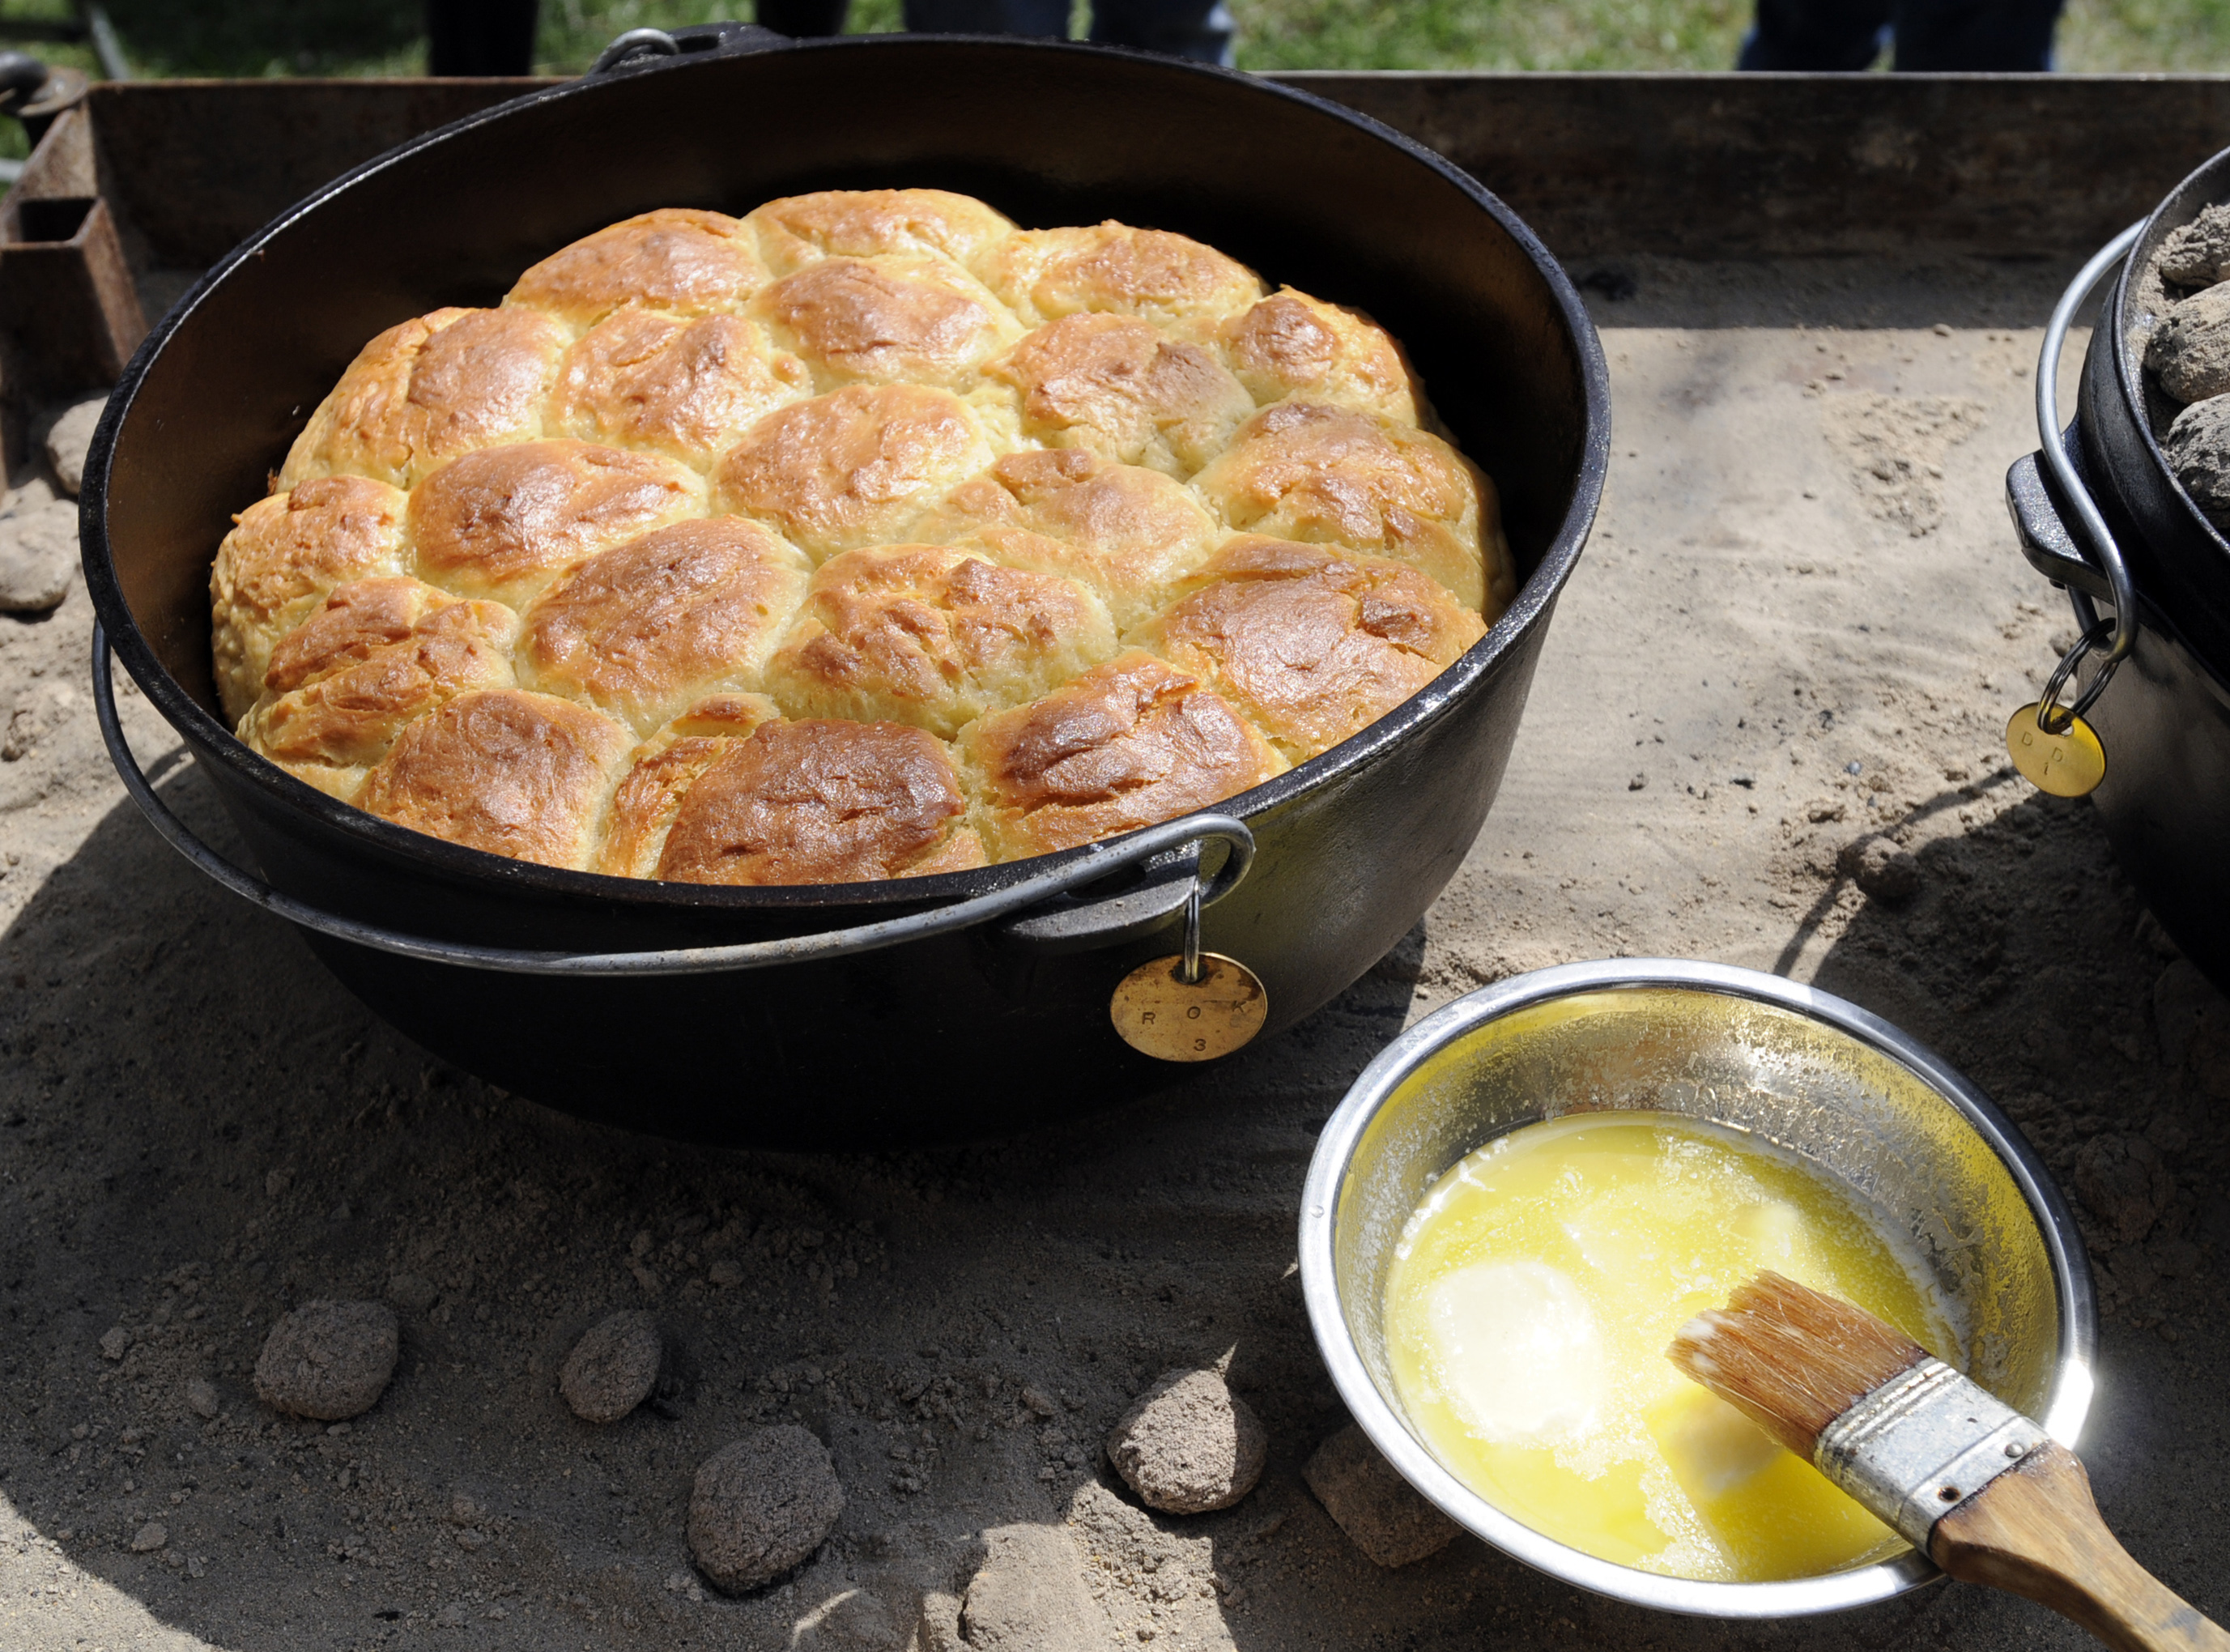 Fall hunting camps call for Dutch oven cooking | The